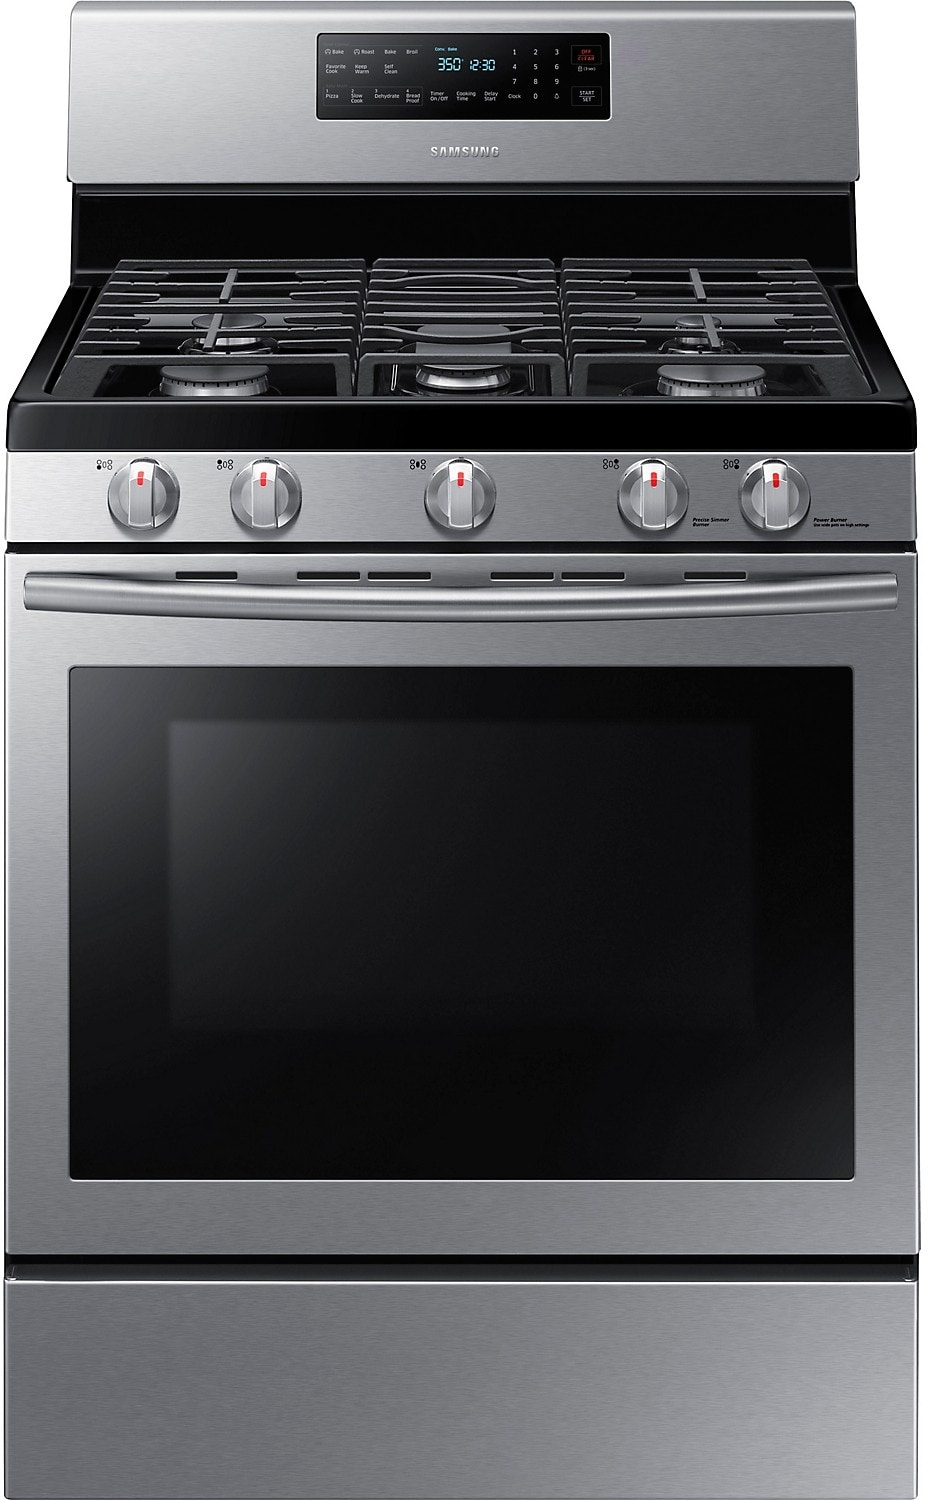 Stainless Steel Stove ~ Samsung free standing gas range stainless steel the brick